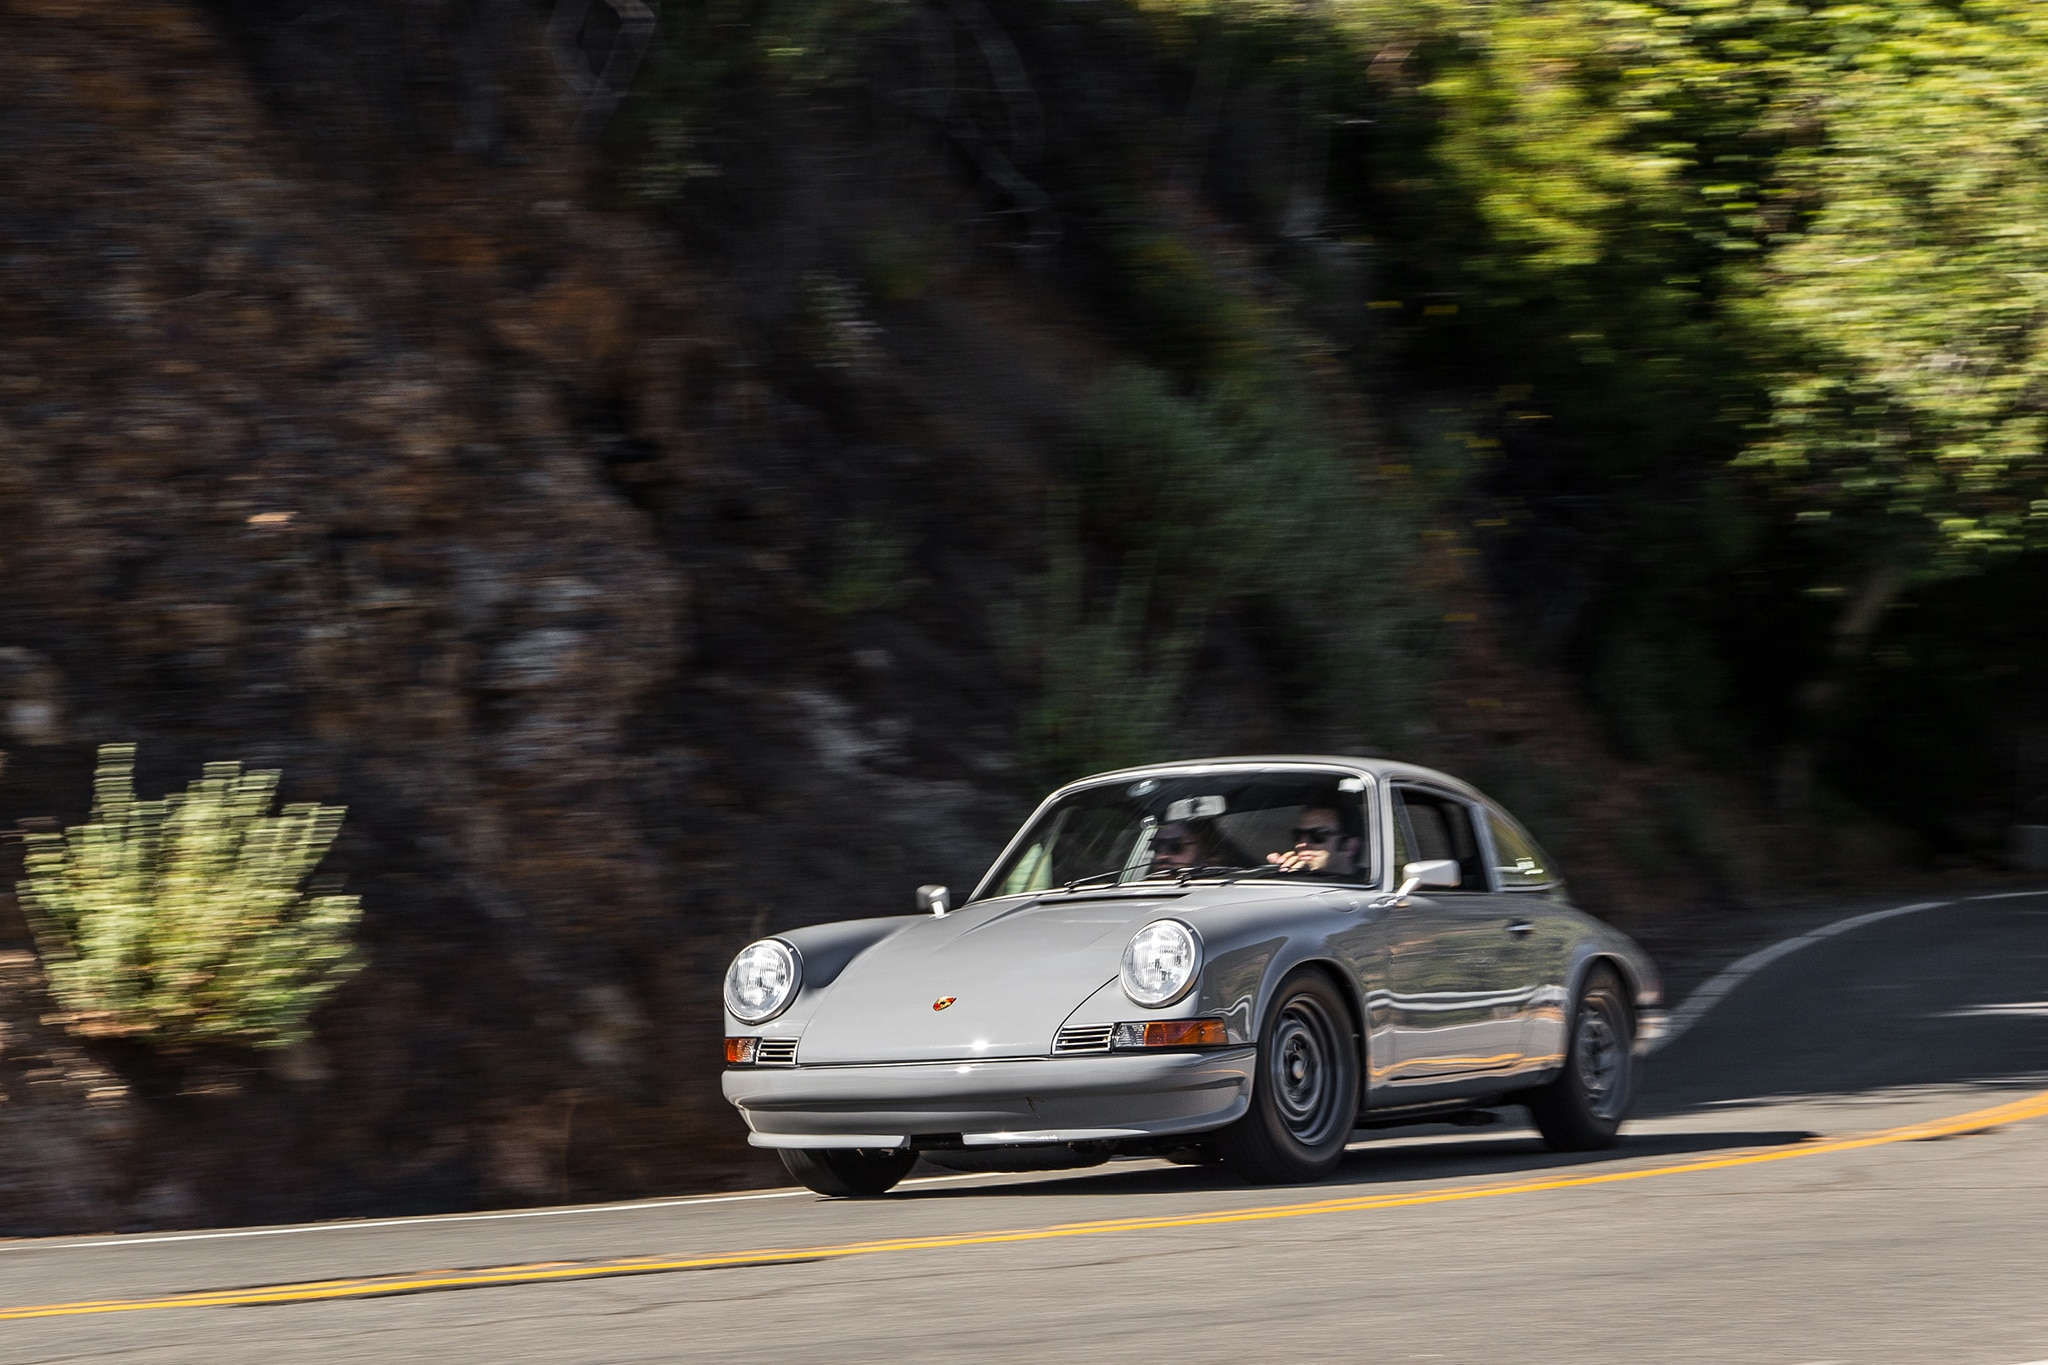 An Afternoon With Two Vintage Porsche 911s Re Imagined By Las Wiring Harness 1973 911 Show More